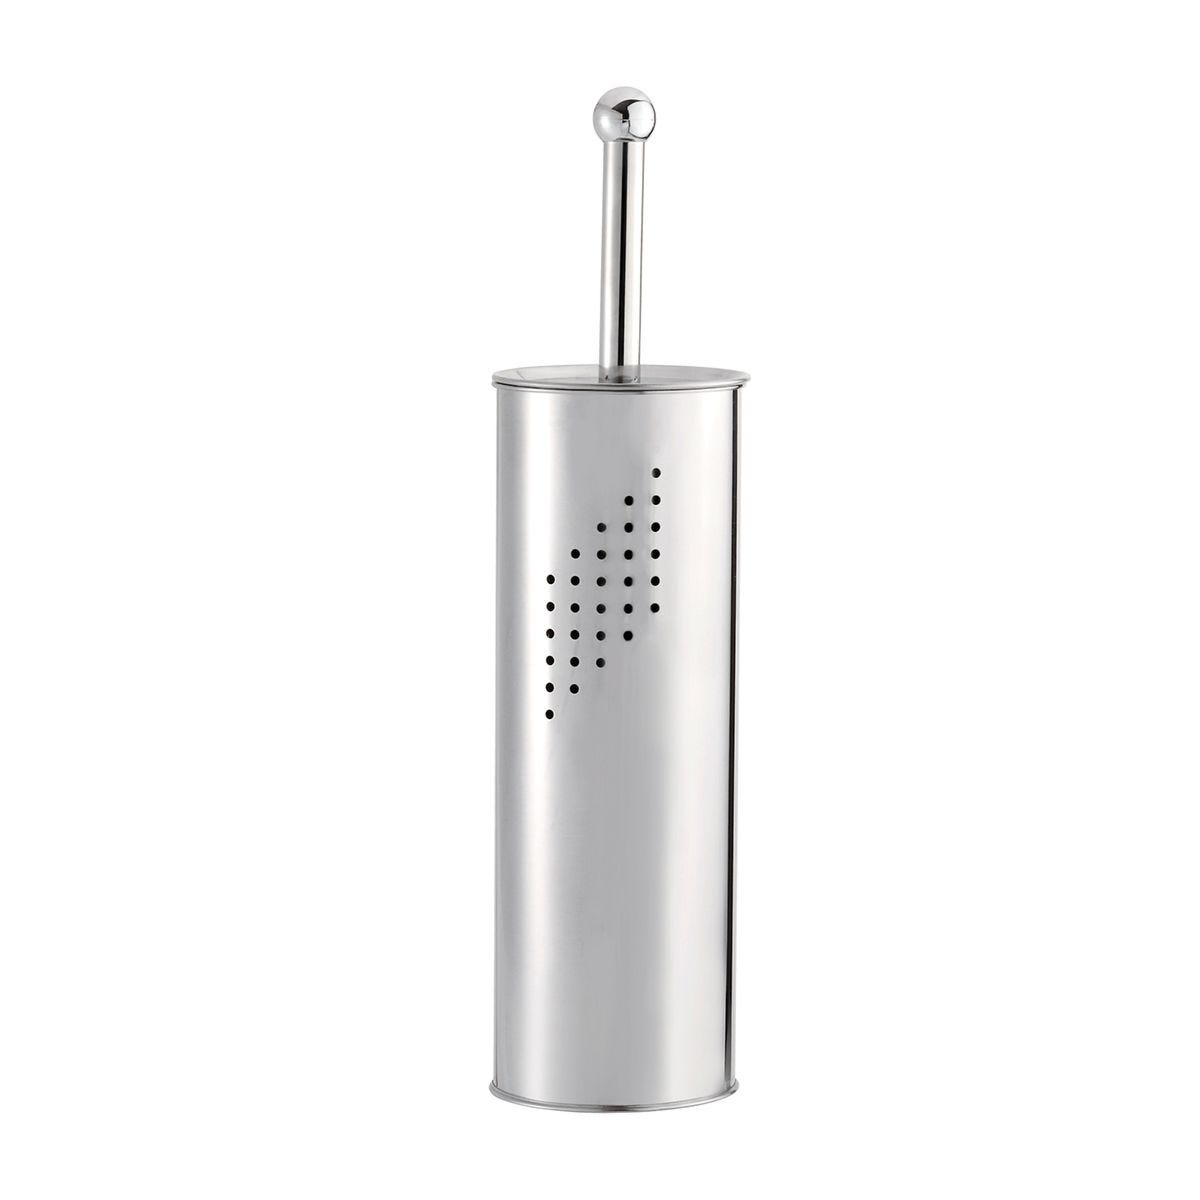 Croydex Toilet Brush Holder - Stainless Steel